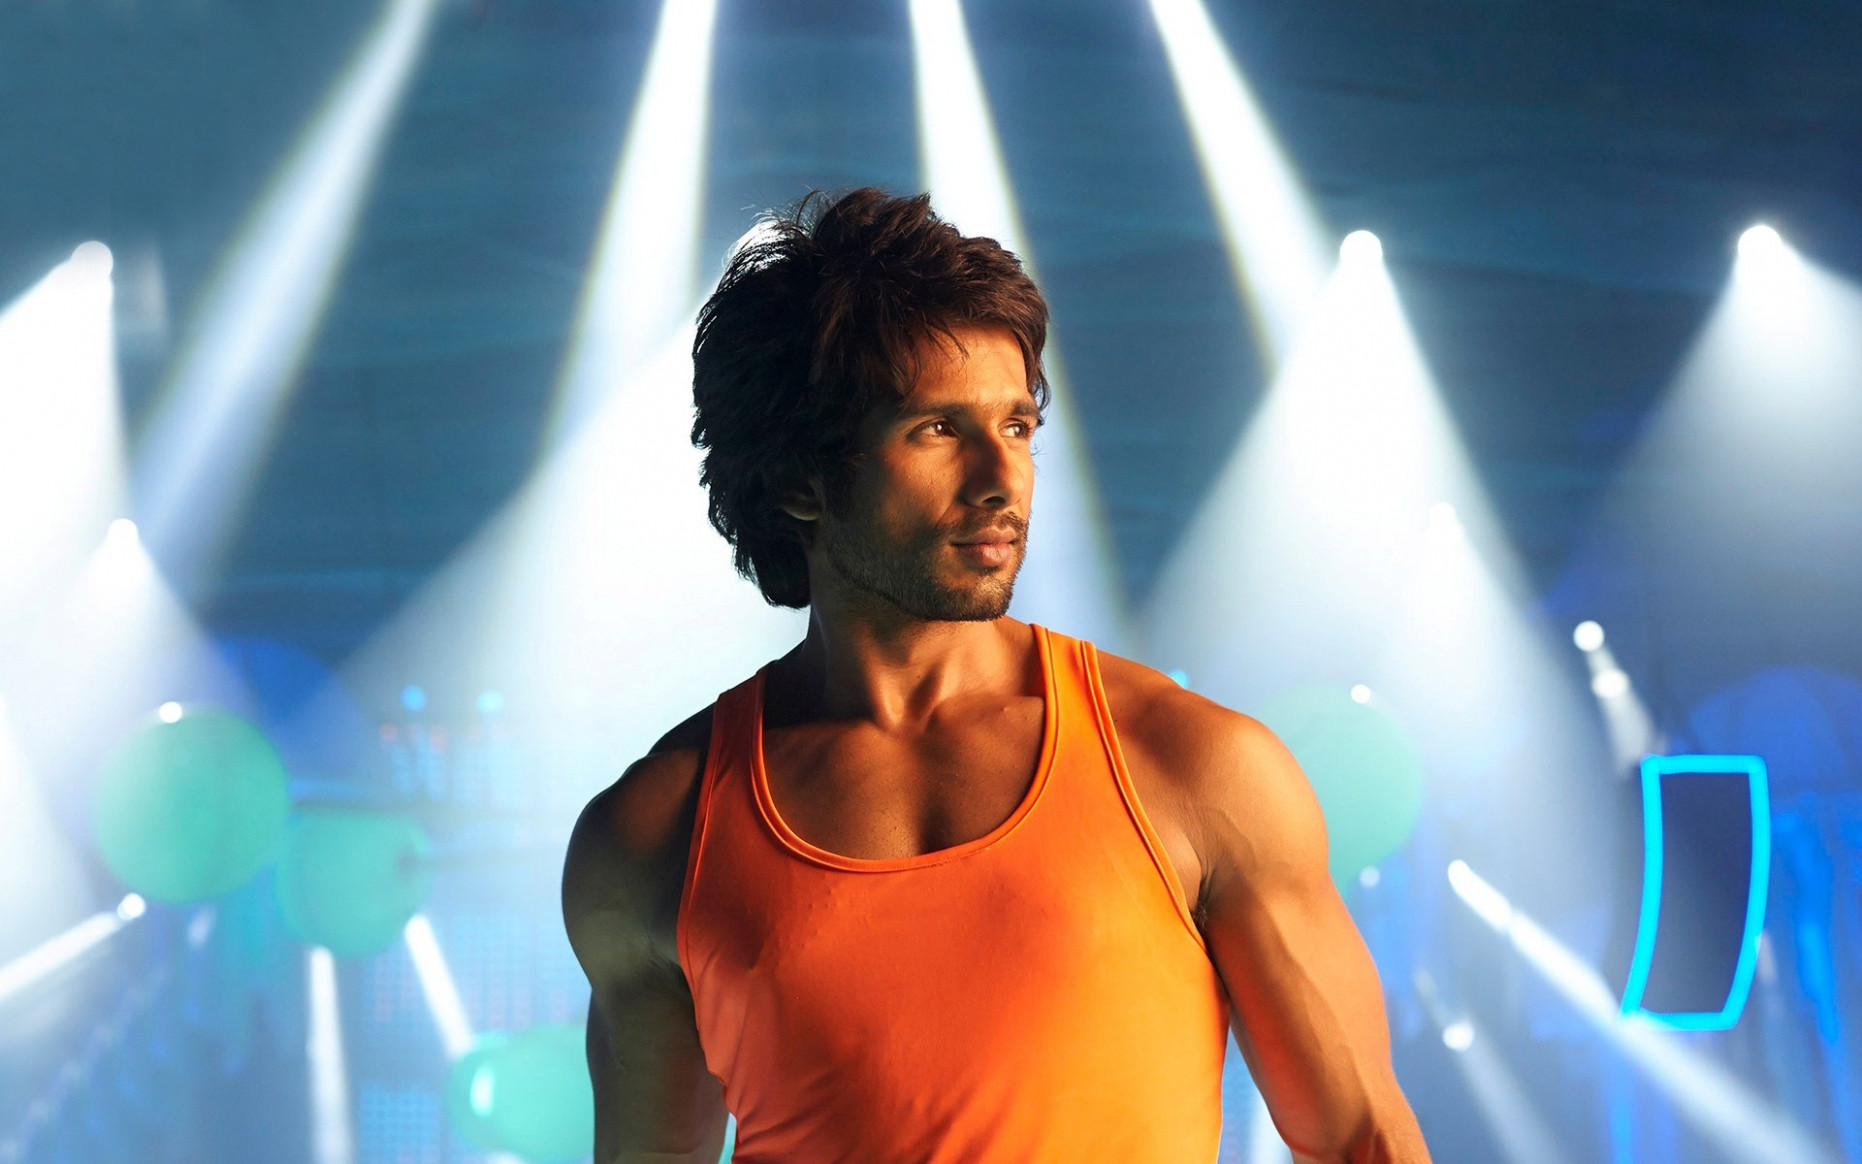 Most Popular HD Wallpaper of Shahid Kapoor Bollywood Hero ...